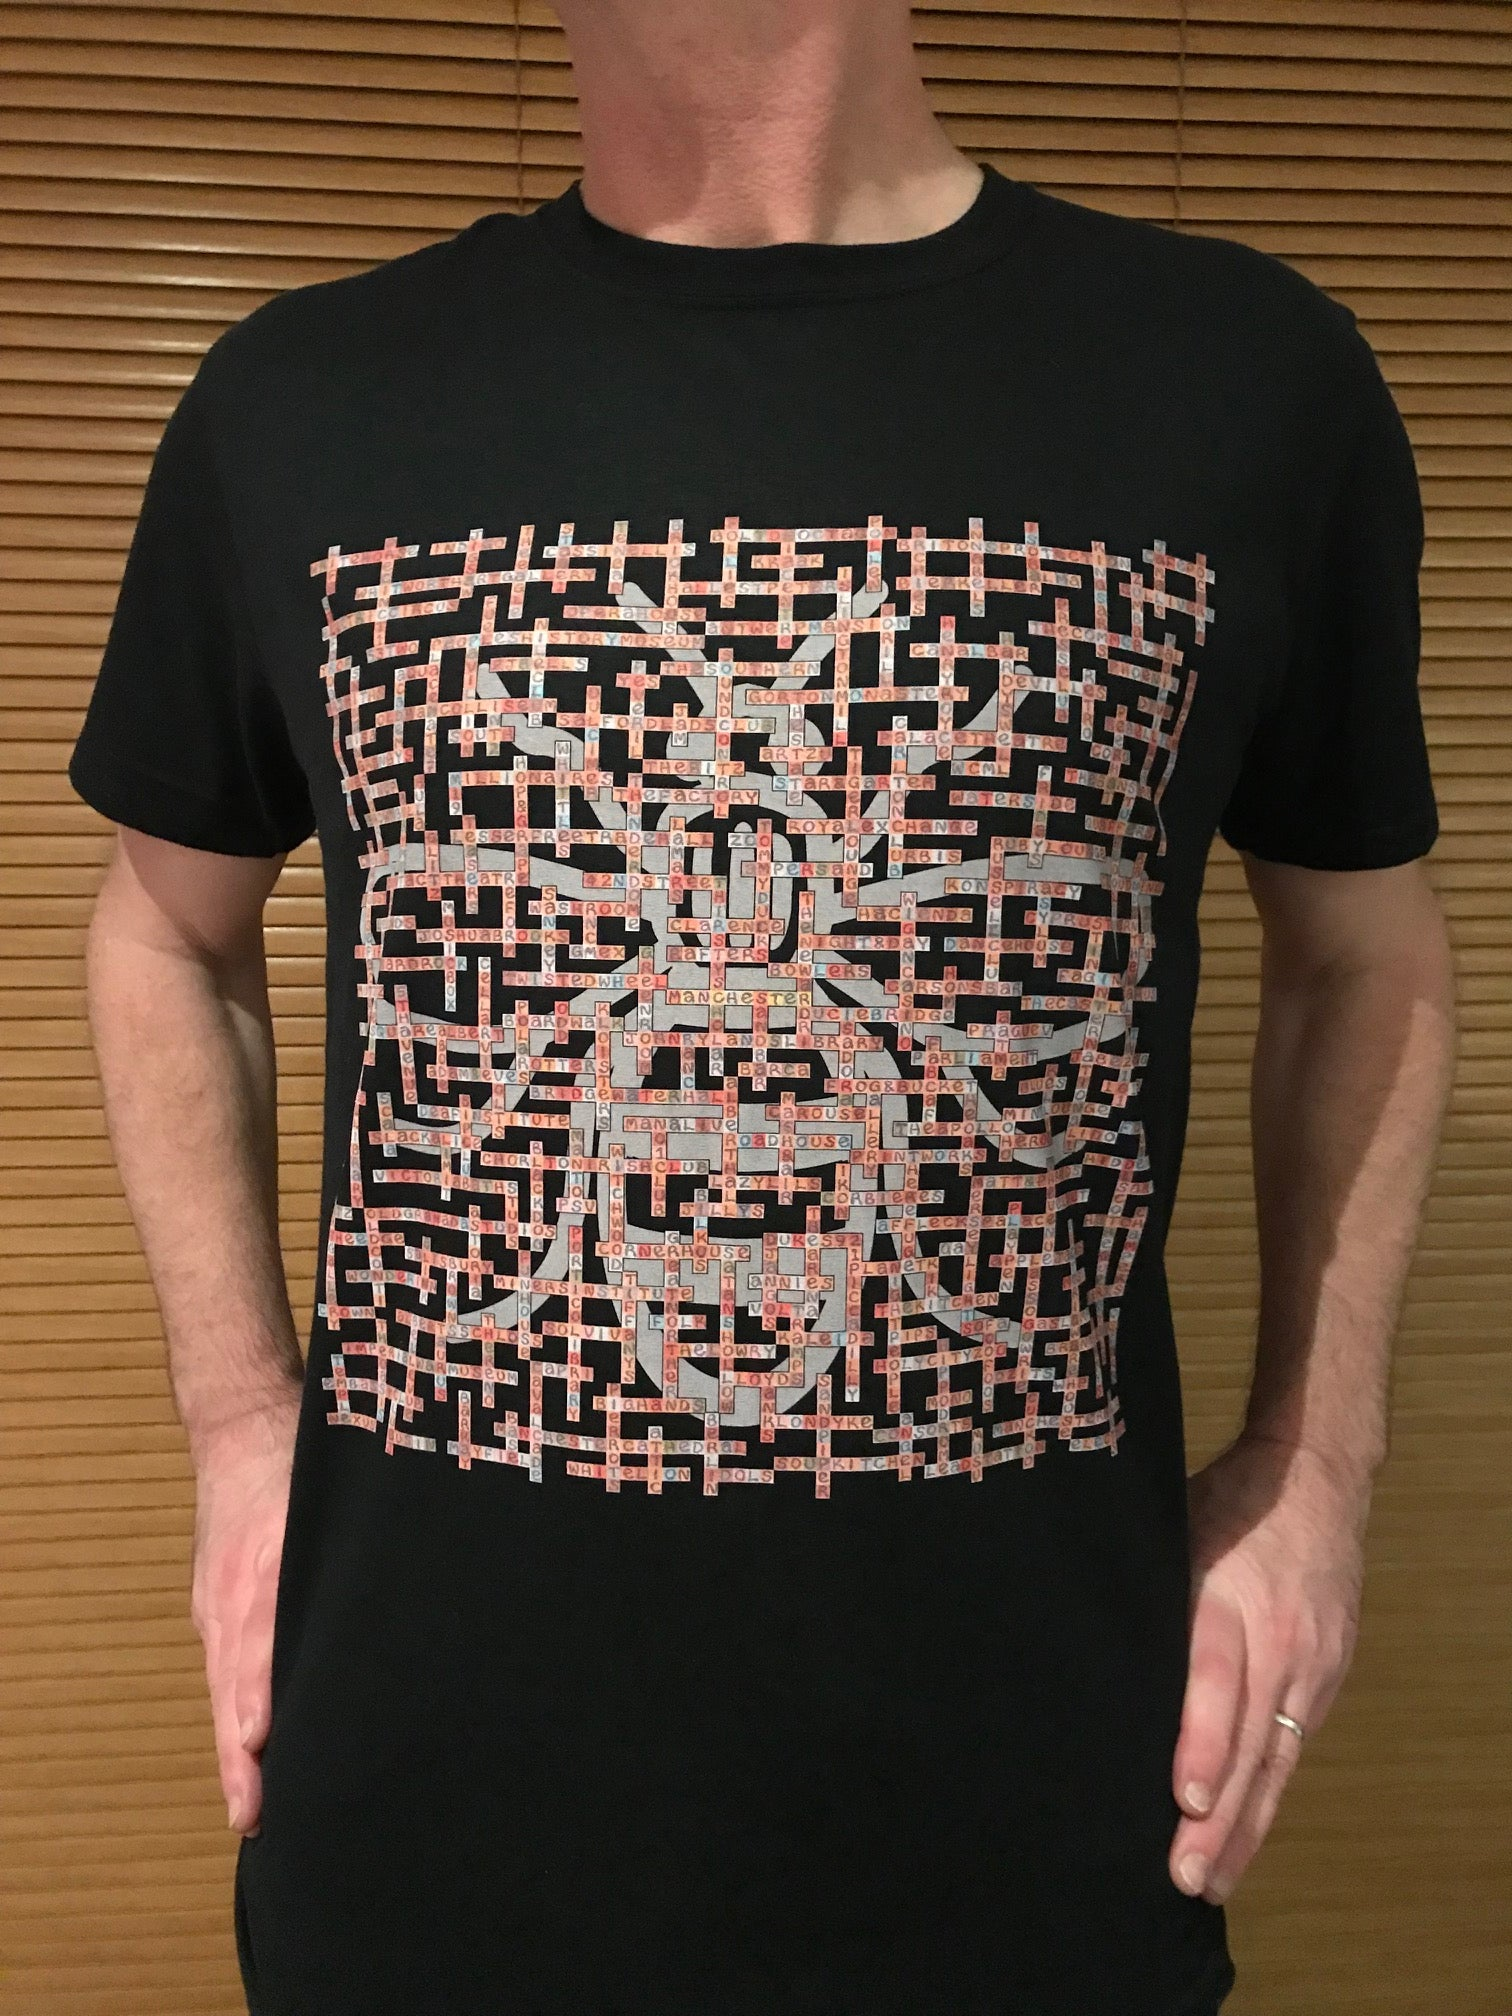 Name-Chains - Manchester Gig Venues T-Shirt